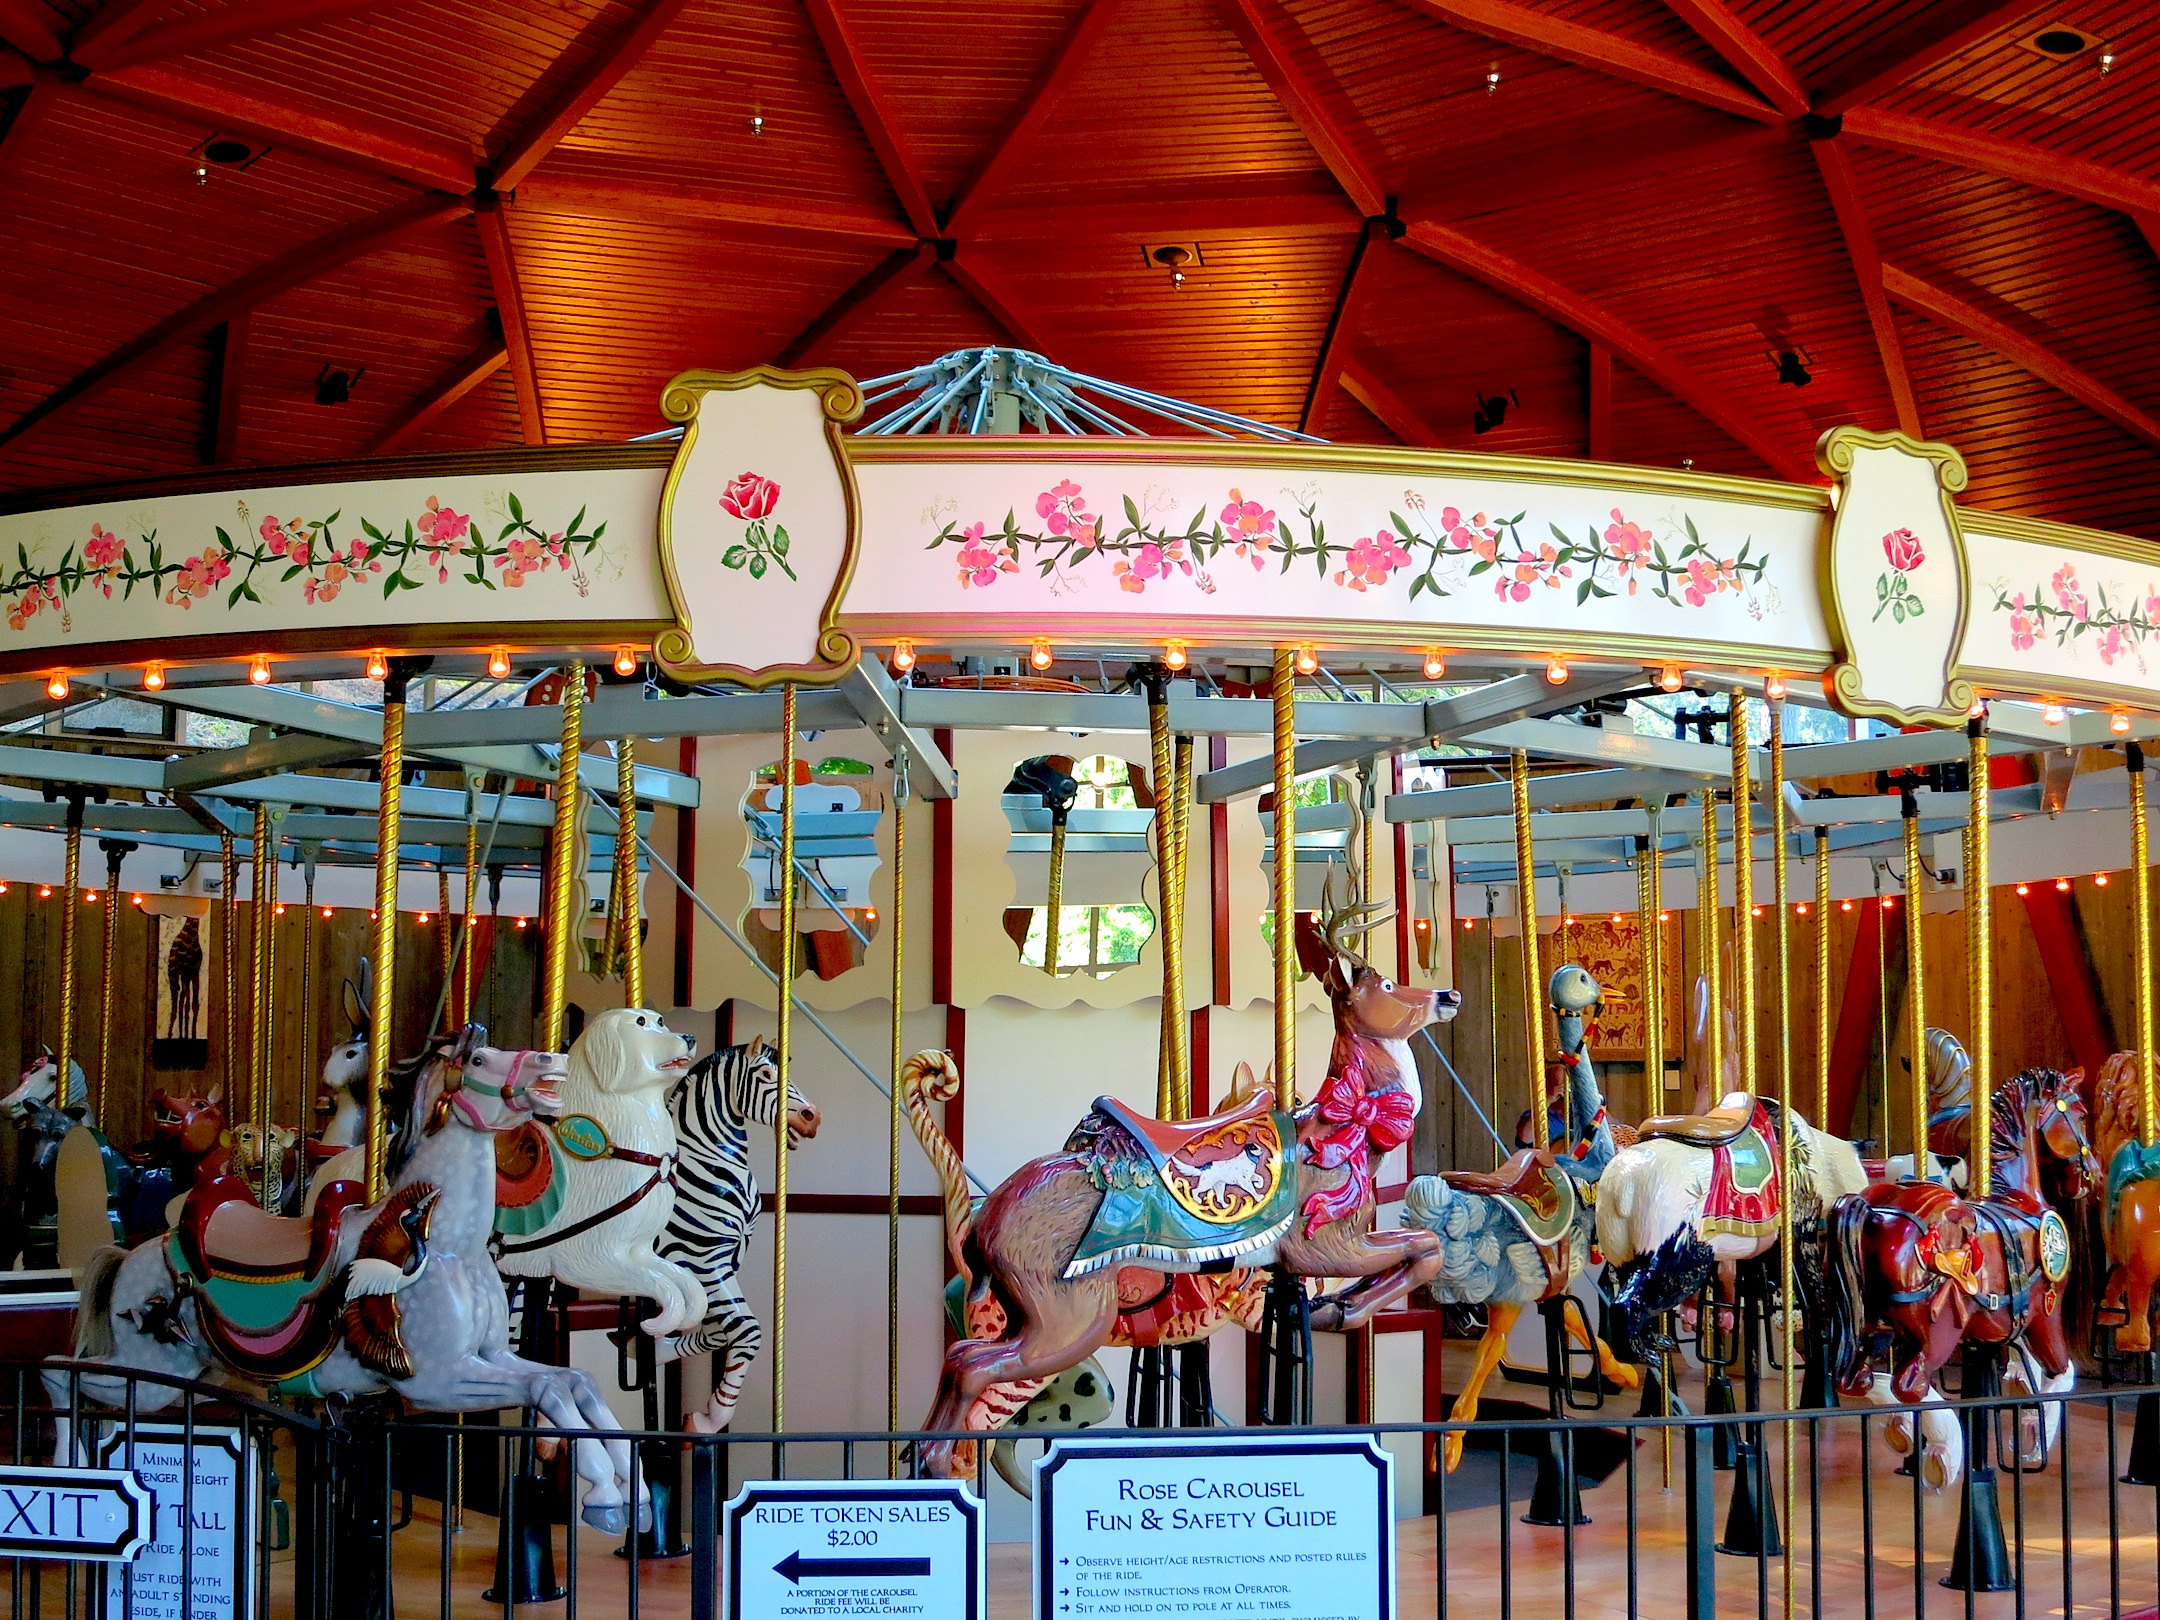 all photos from the Rose Carousel of Butchart Gardens, Vancouver Island, British Columbia